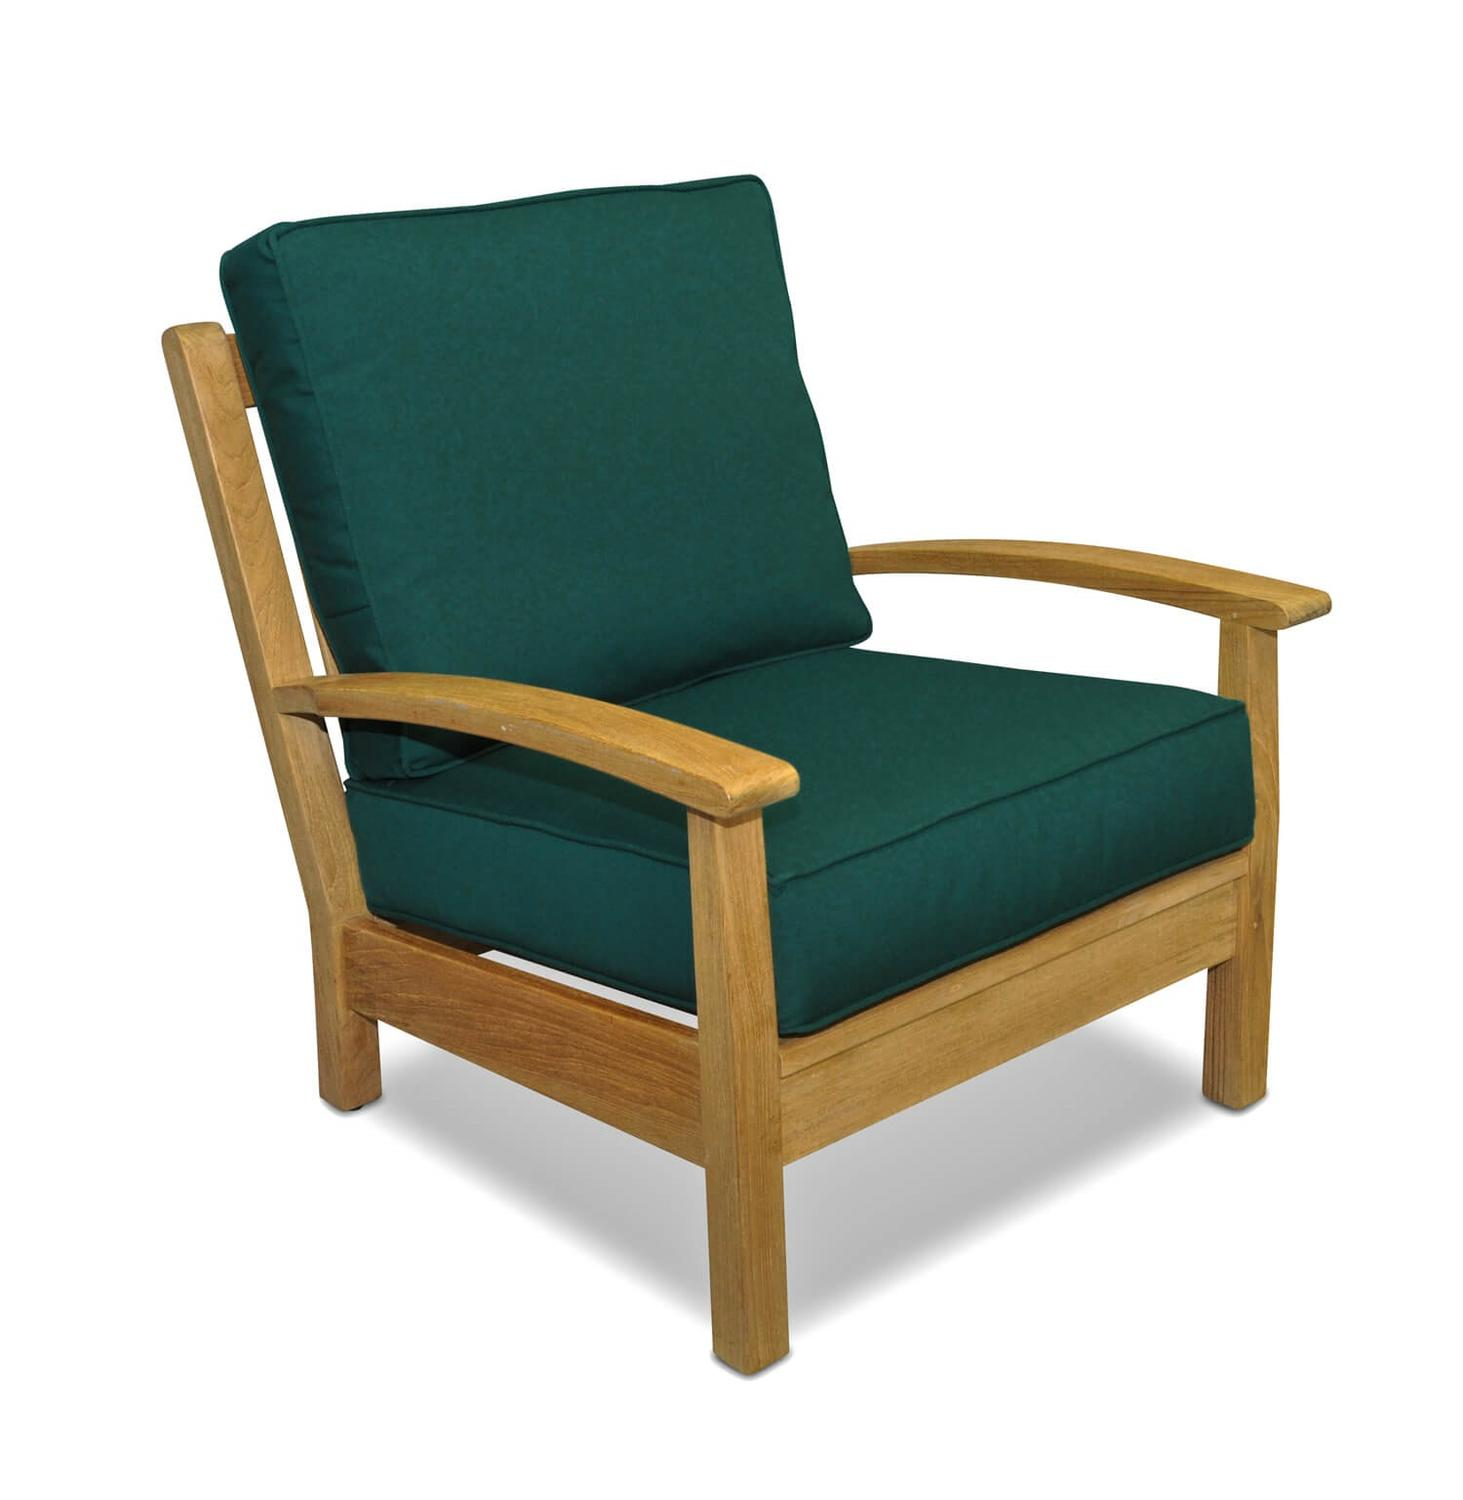 "34"" Natural Teak Deep Seating Outdoor Patio Lounge Chair with Forest Green Cushions"